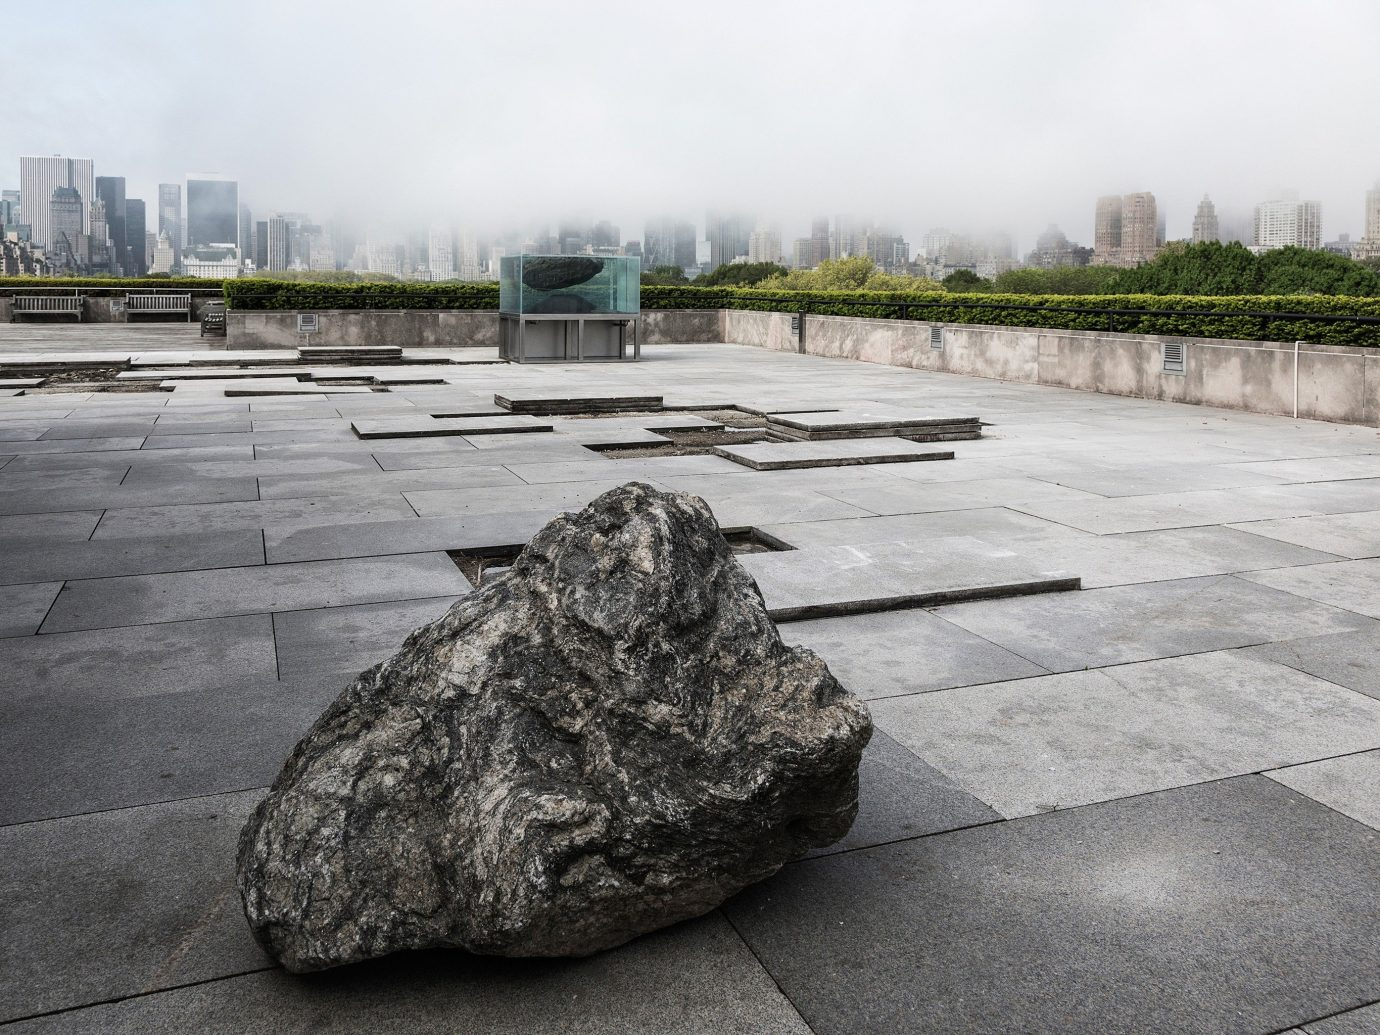 Arts + Culture ground outdoor rock way road surface sculpture sidewalk memorial monument material concrete cement paving